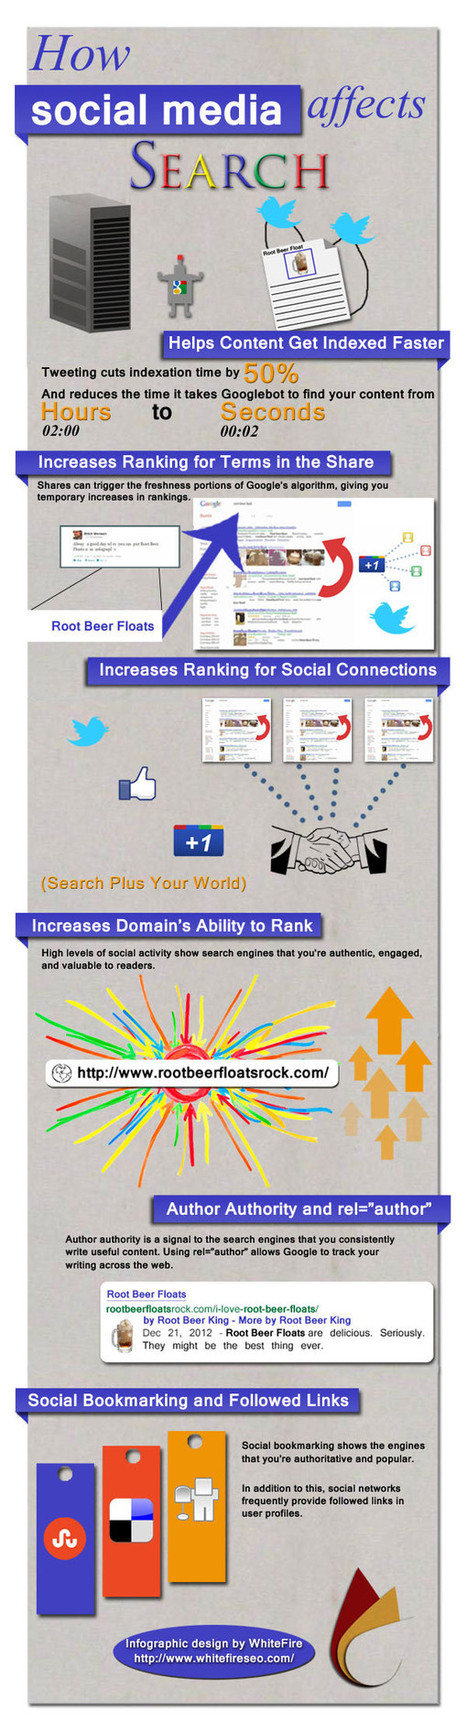 How Social Media Impacts SEO and Site Ranking: infographic | DV8 Digital Marketing Tips and Insight | Scoop.it